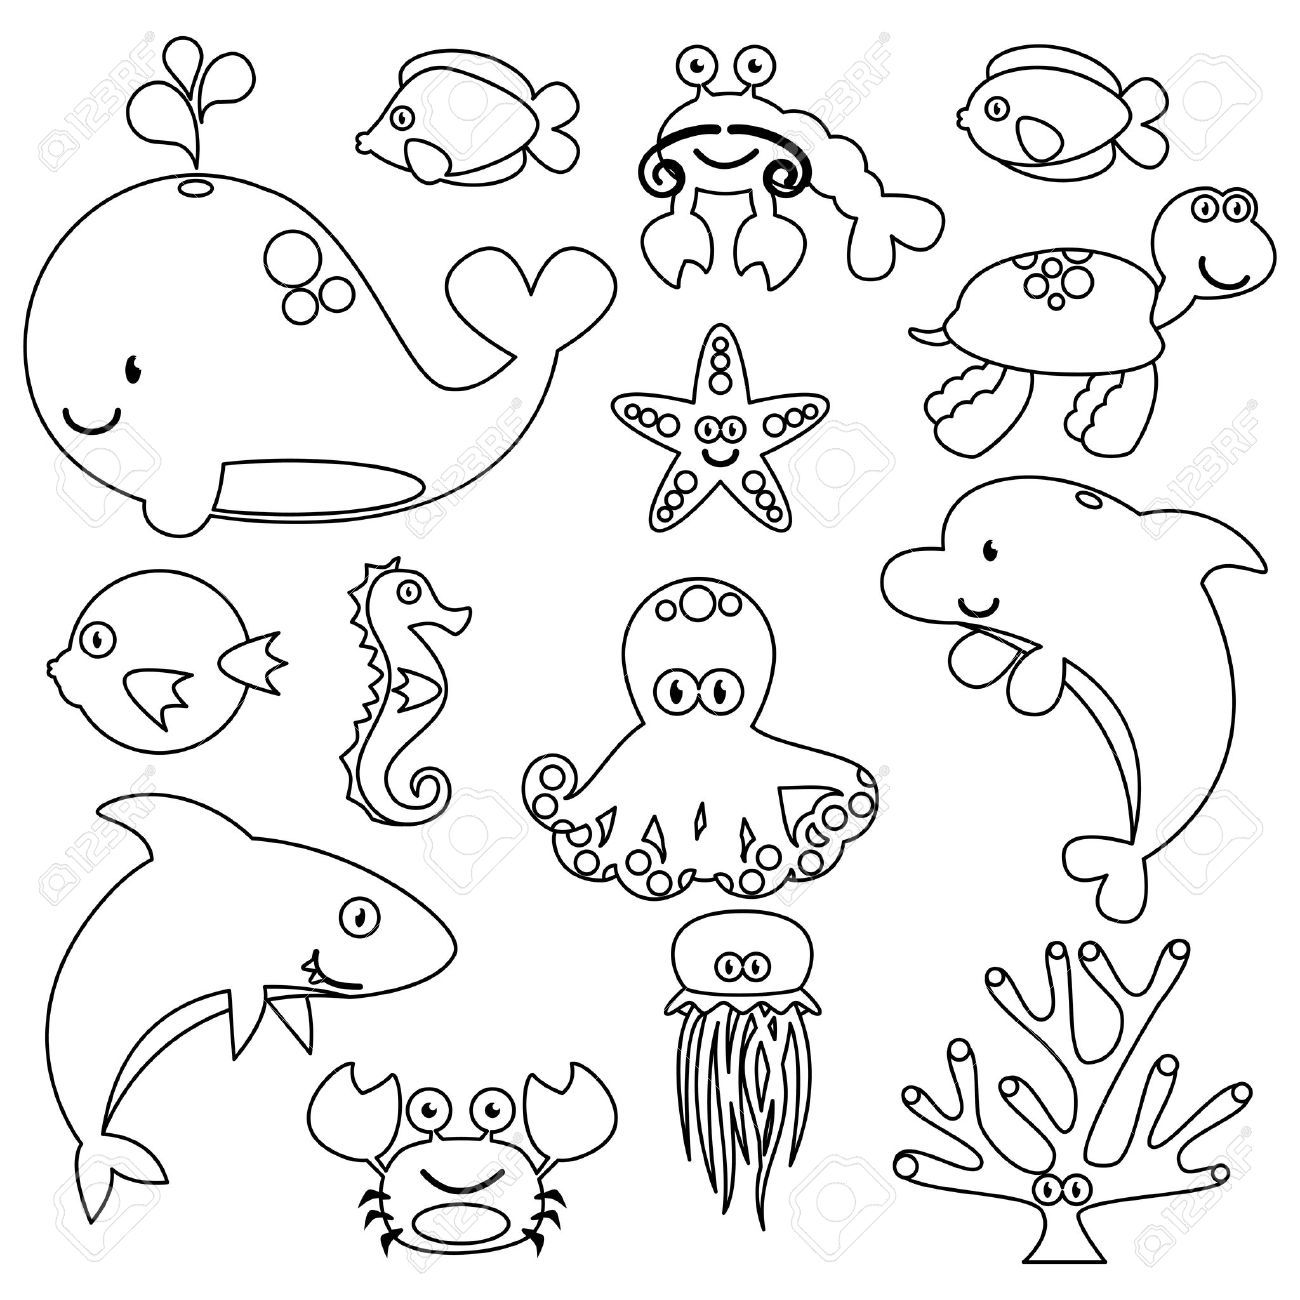 Image result for LINE DRAWINGS OF OCEAN CREATURES | Sea ...